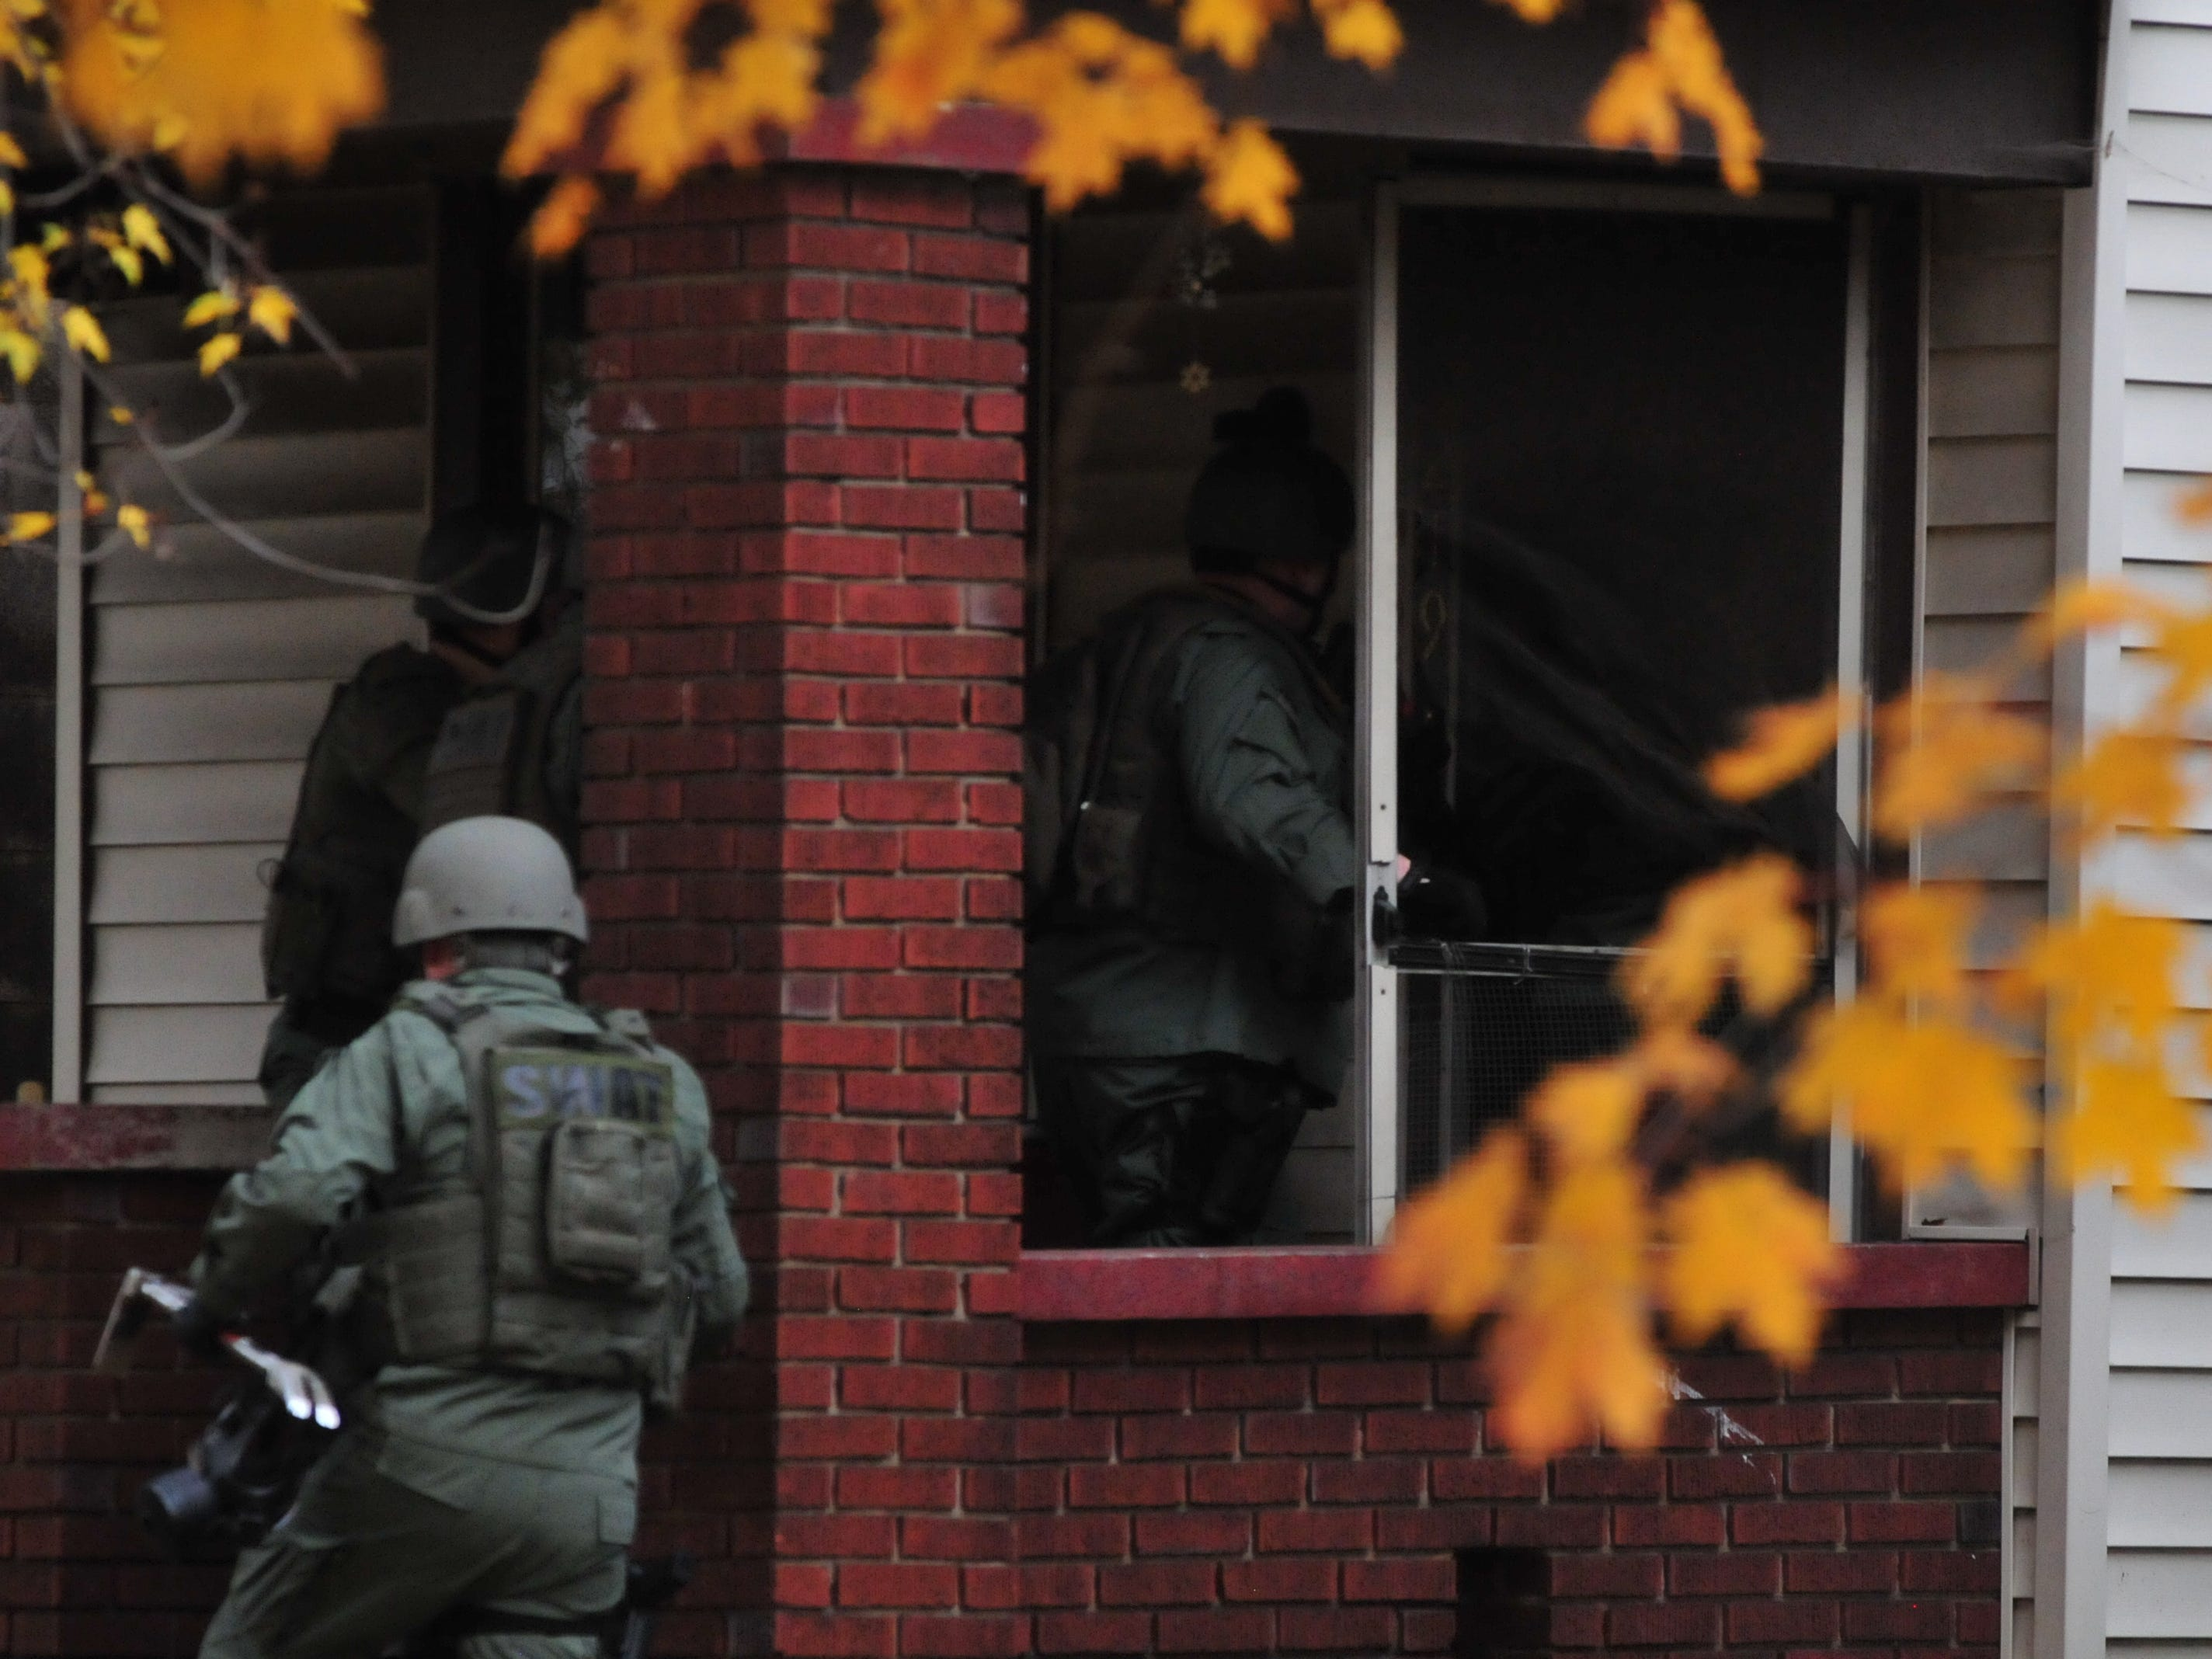 SWAT team members enter 219 N. 16th St. to execute a search warrant Monday.